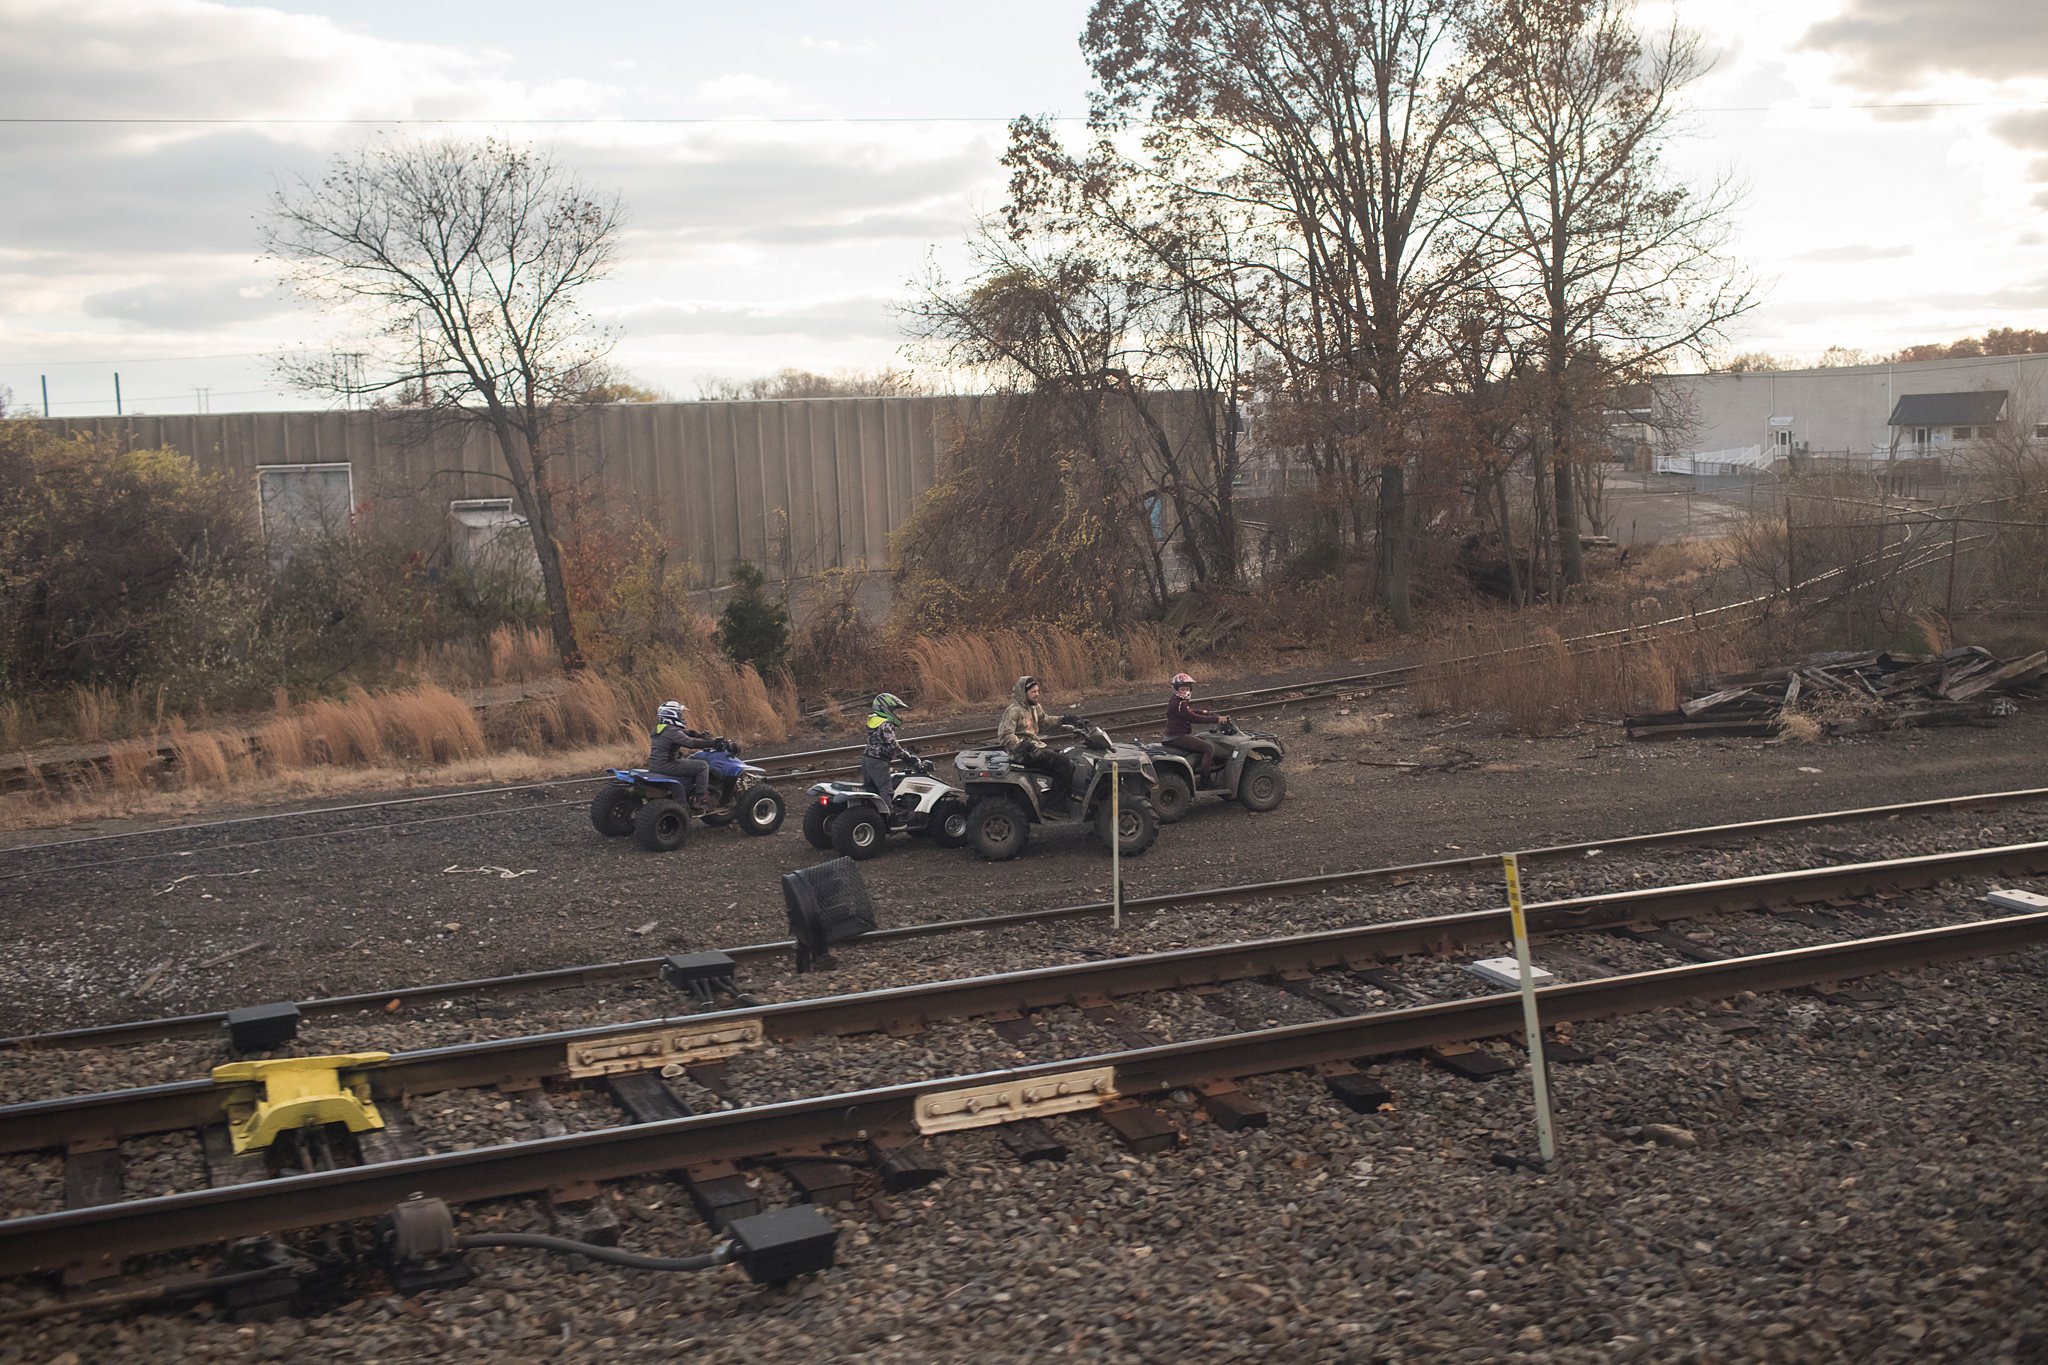 ATV Posse By The Tracks - Croyden, PA - 11.27.2016 WAS-NYP